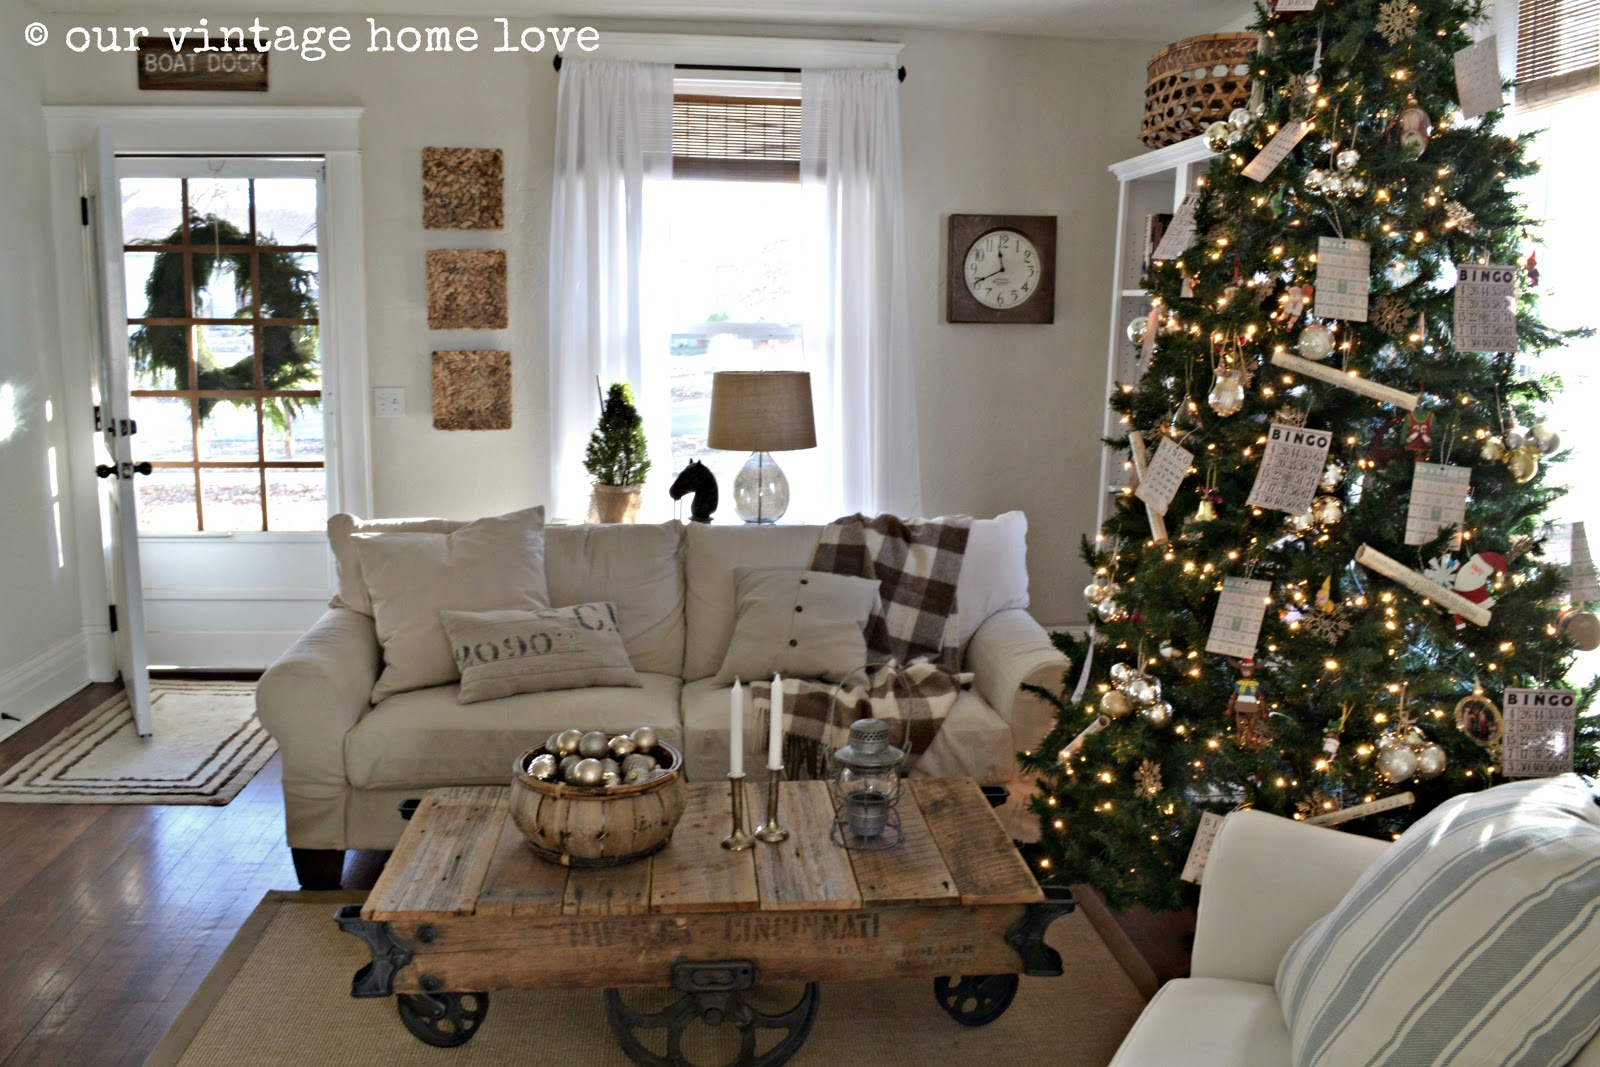 Our vintage home love 2012 christmas decor ideas for Antique home decorations